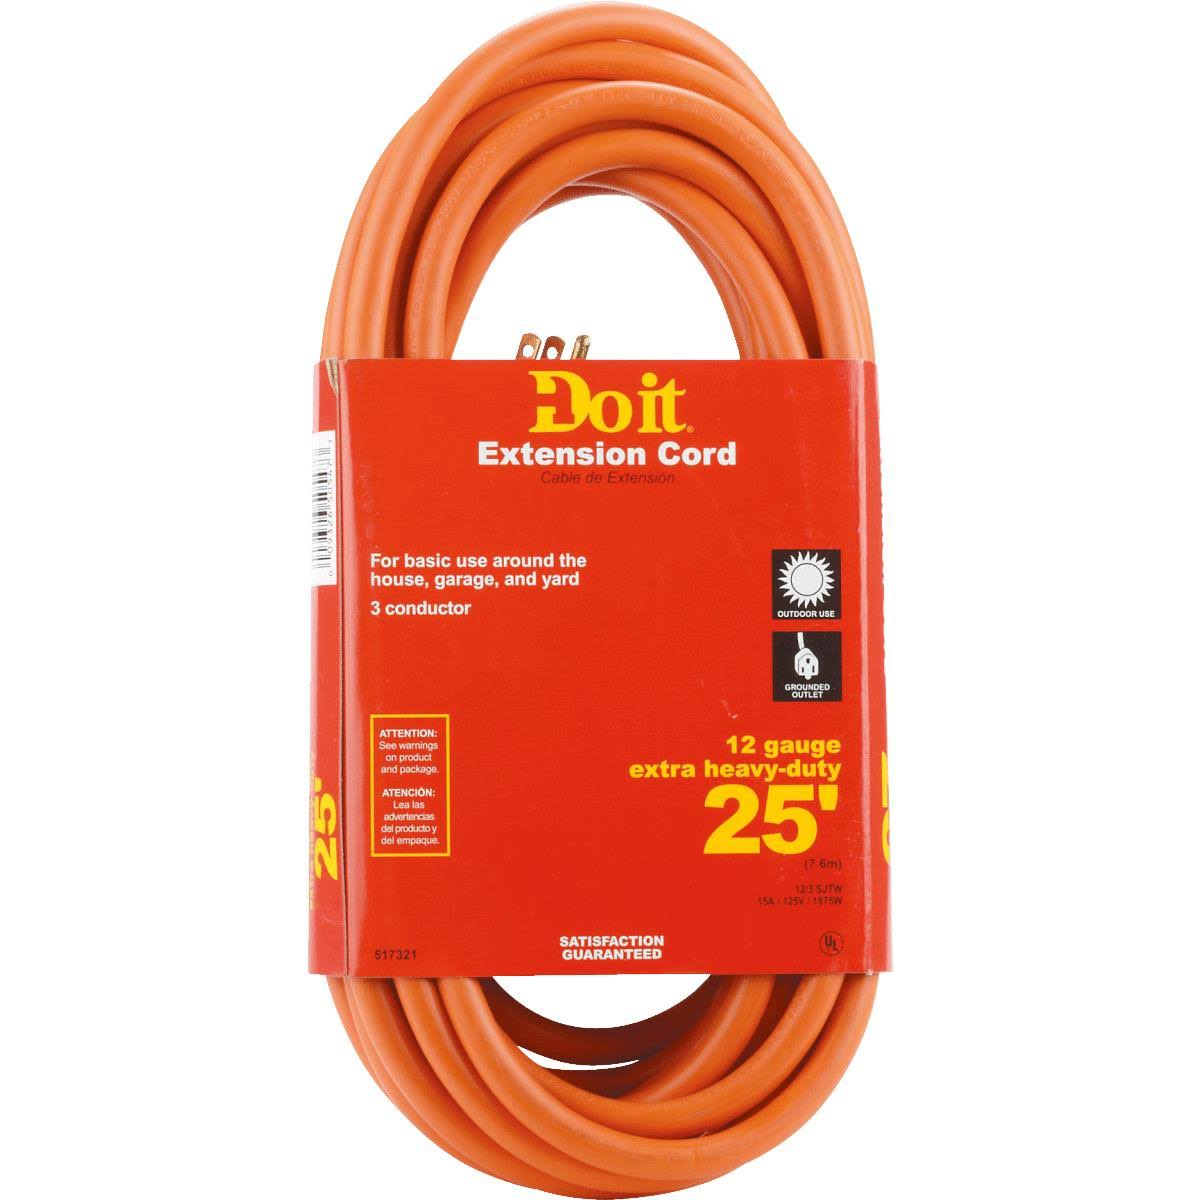 Do It Heavy Duty Outdoor Extension Cord - 25'